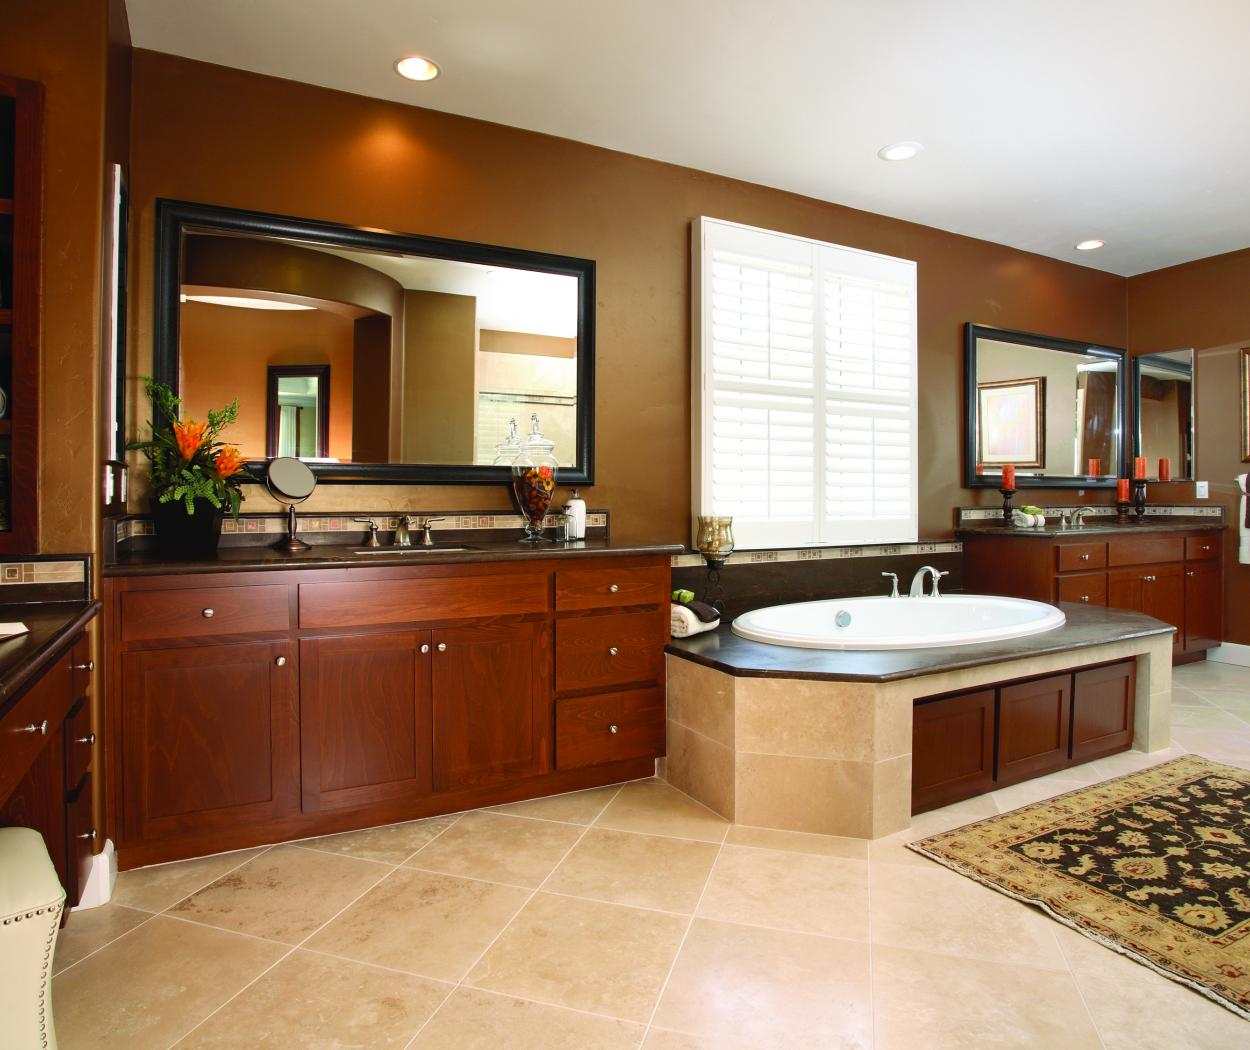 Beautiful Stained Master Bathroom with Double Vanities, Marble Counter Tops and Chrome Hardware